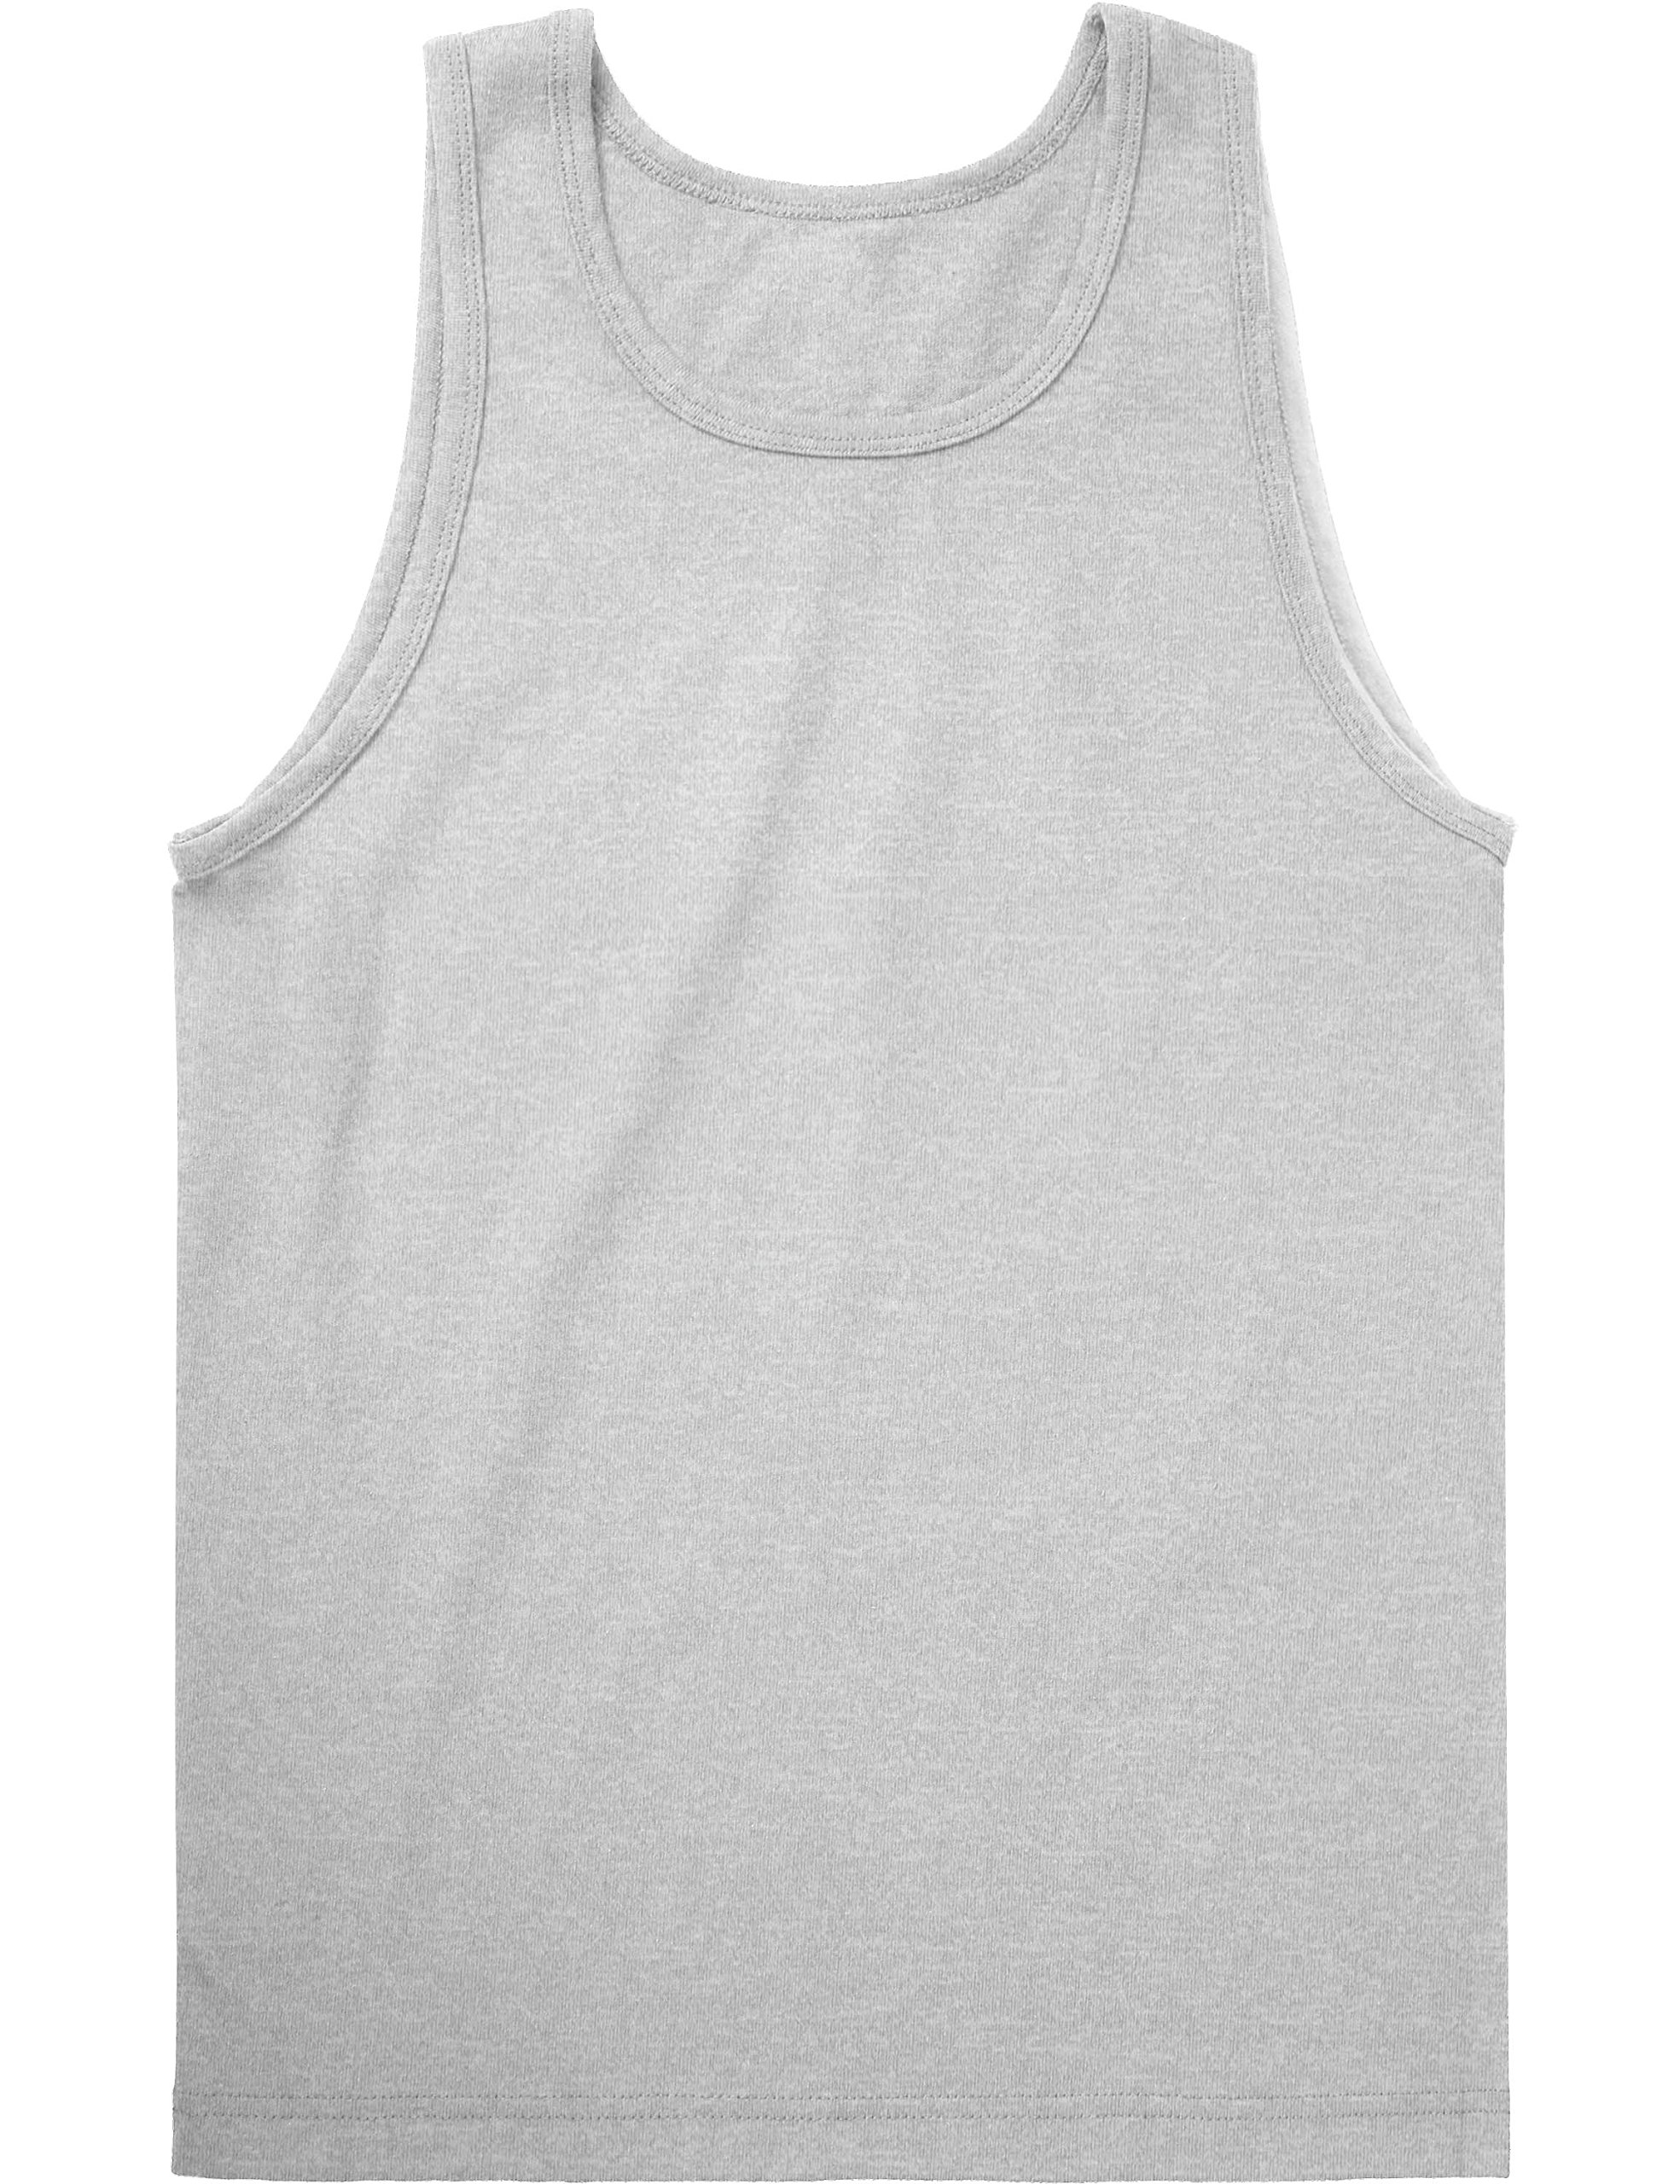 Hat and Beyond KS Mens Tank Top Muscle Fit Active Exercise Sleeveless Shirt (3X-Large, Gray)